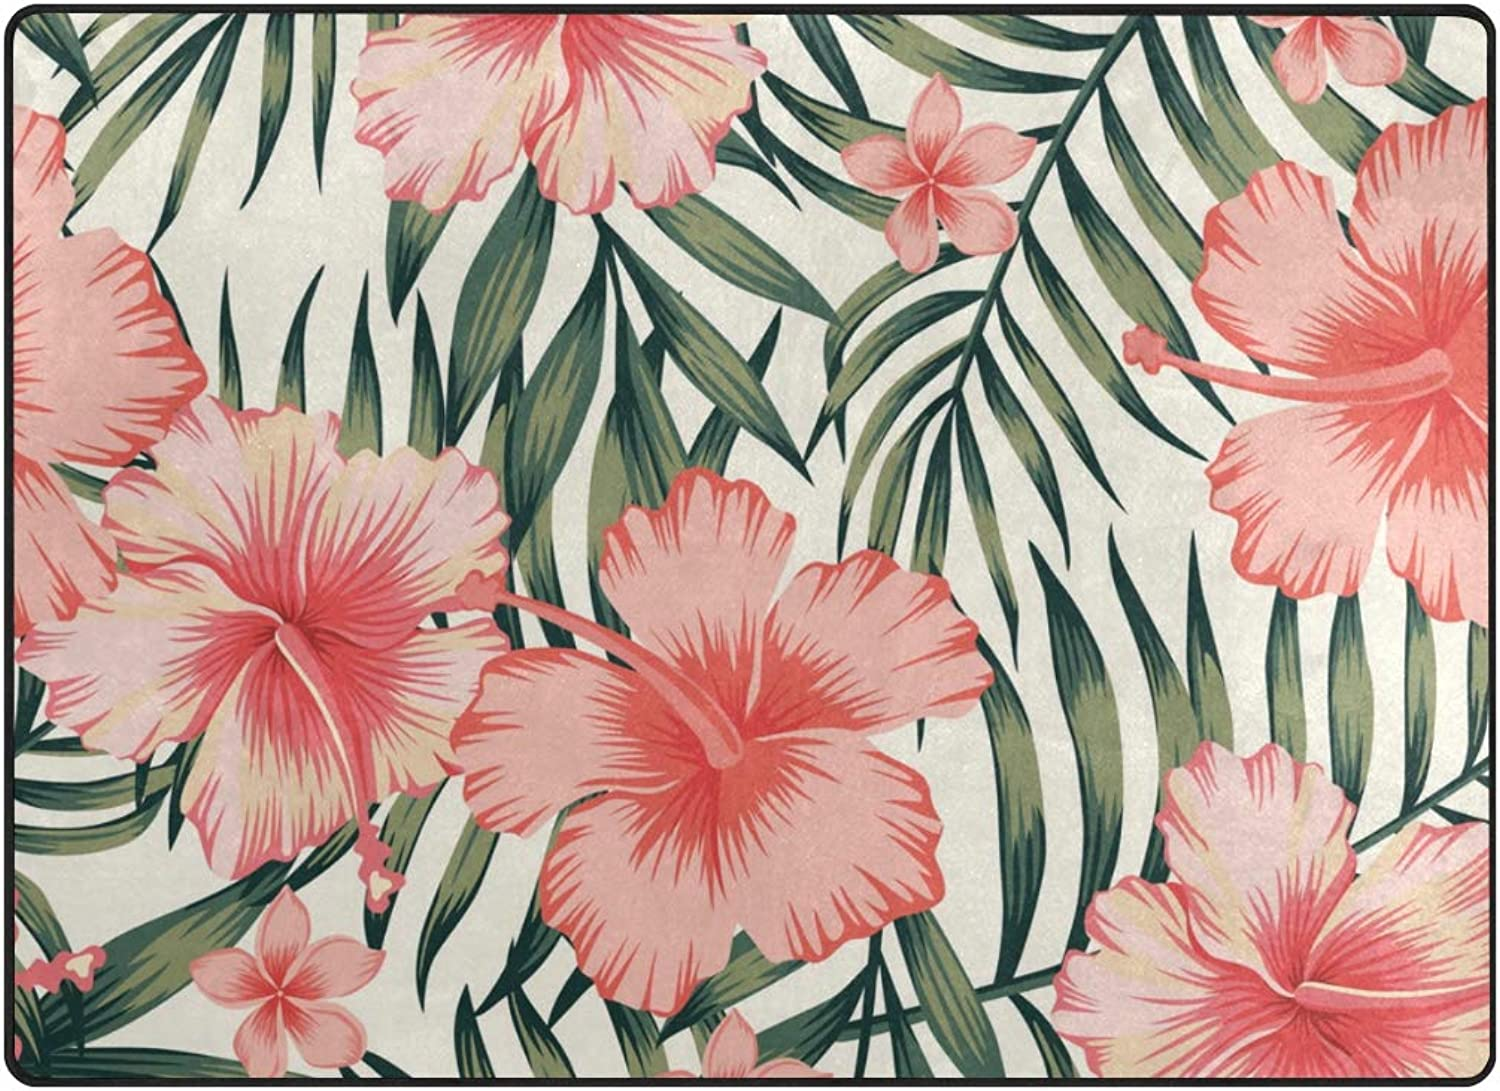 SUABO 80 x 58 inches Area Rug Non-Slip Floor Mat Tropical Floral Printed Doormats Living Room Bedroom